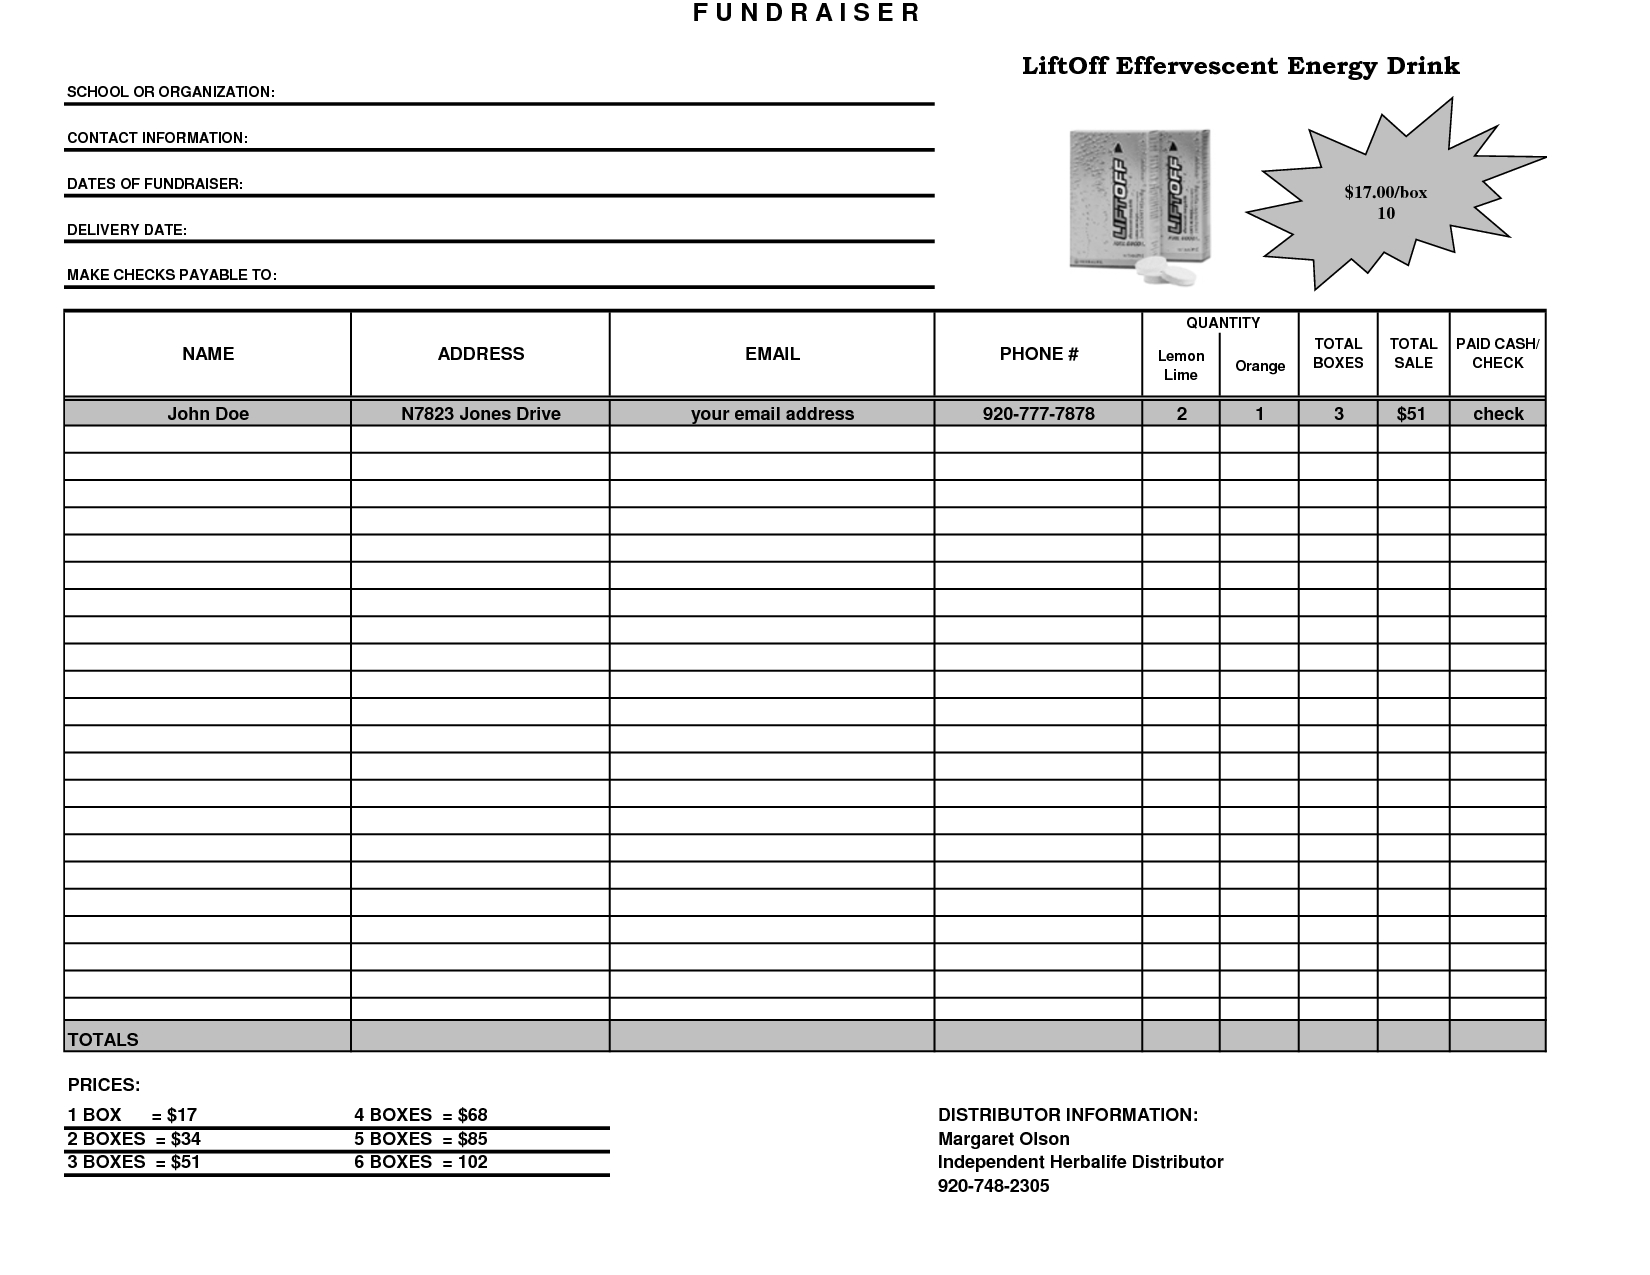 Fundraiser Template Excel Fundraiser Order Form Template Intended For Fundraising Report Template